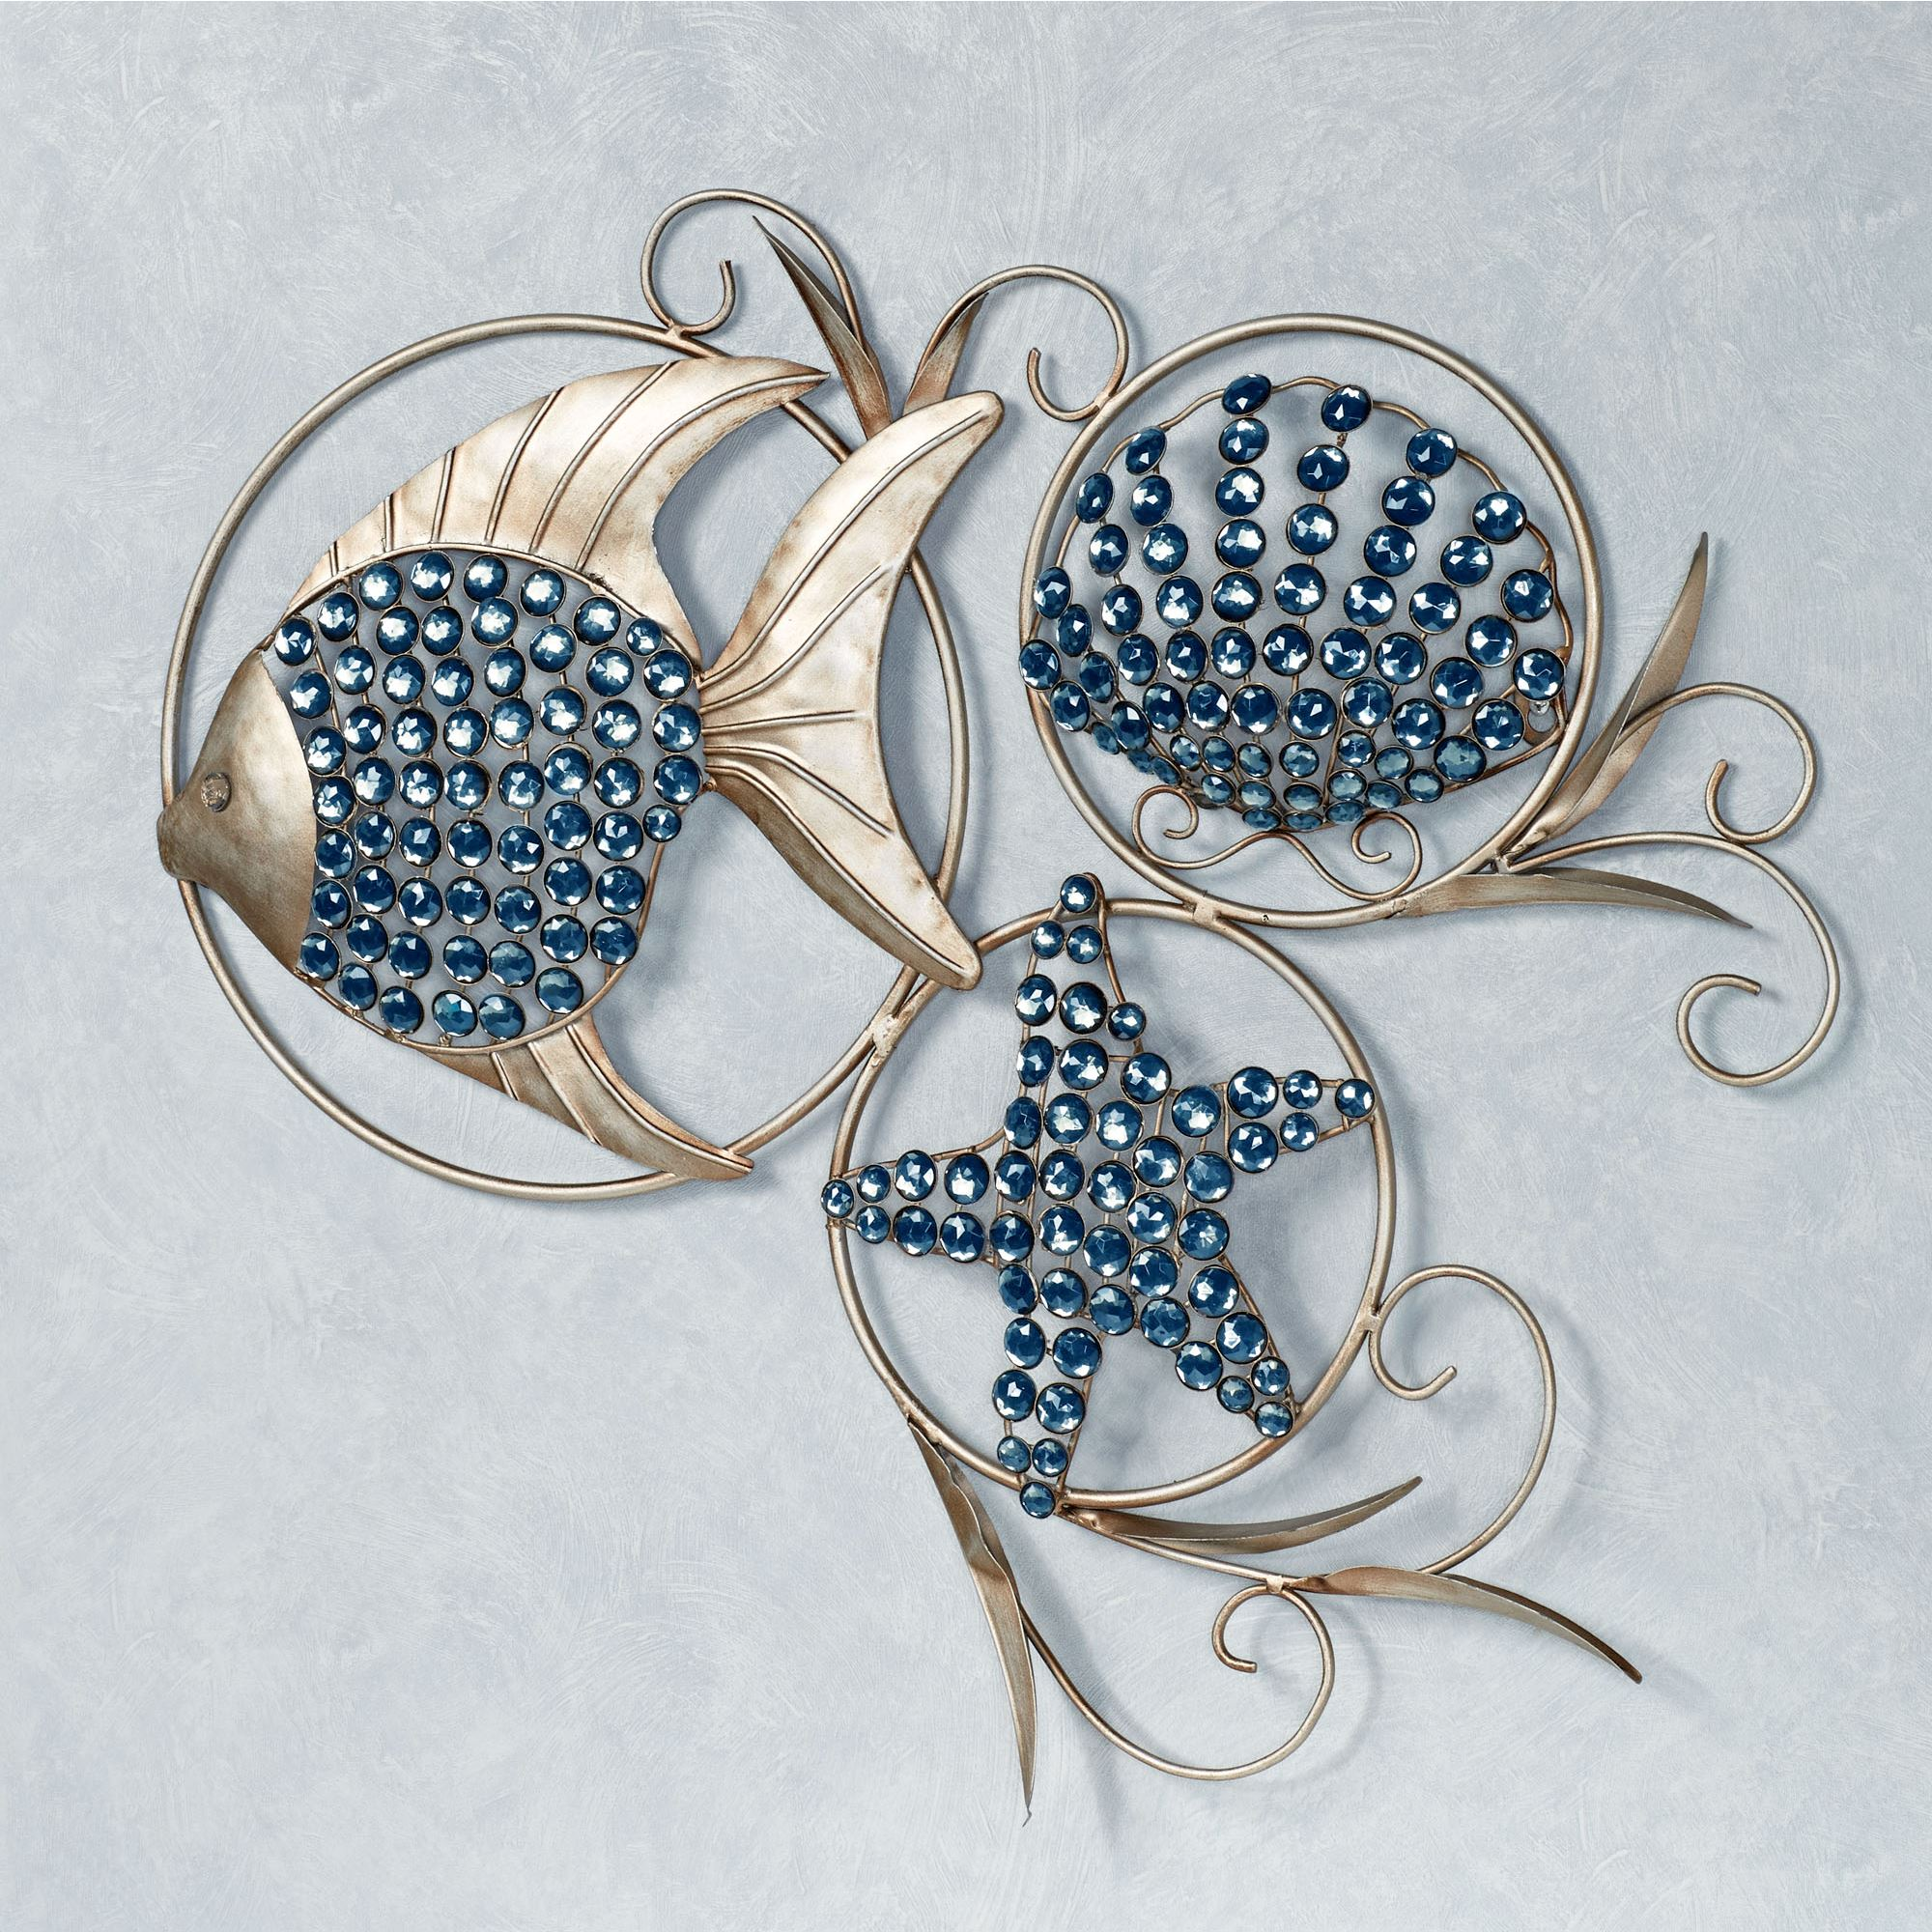 Blue Metal Wall Art Interesting Ocean Gems Fish And Seashell Metal Wall Art Design Inspiration